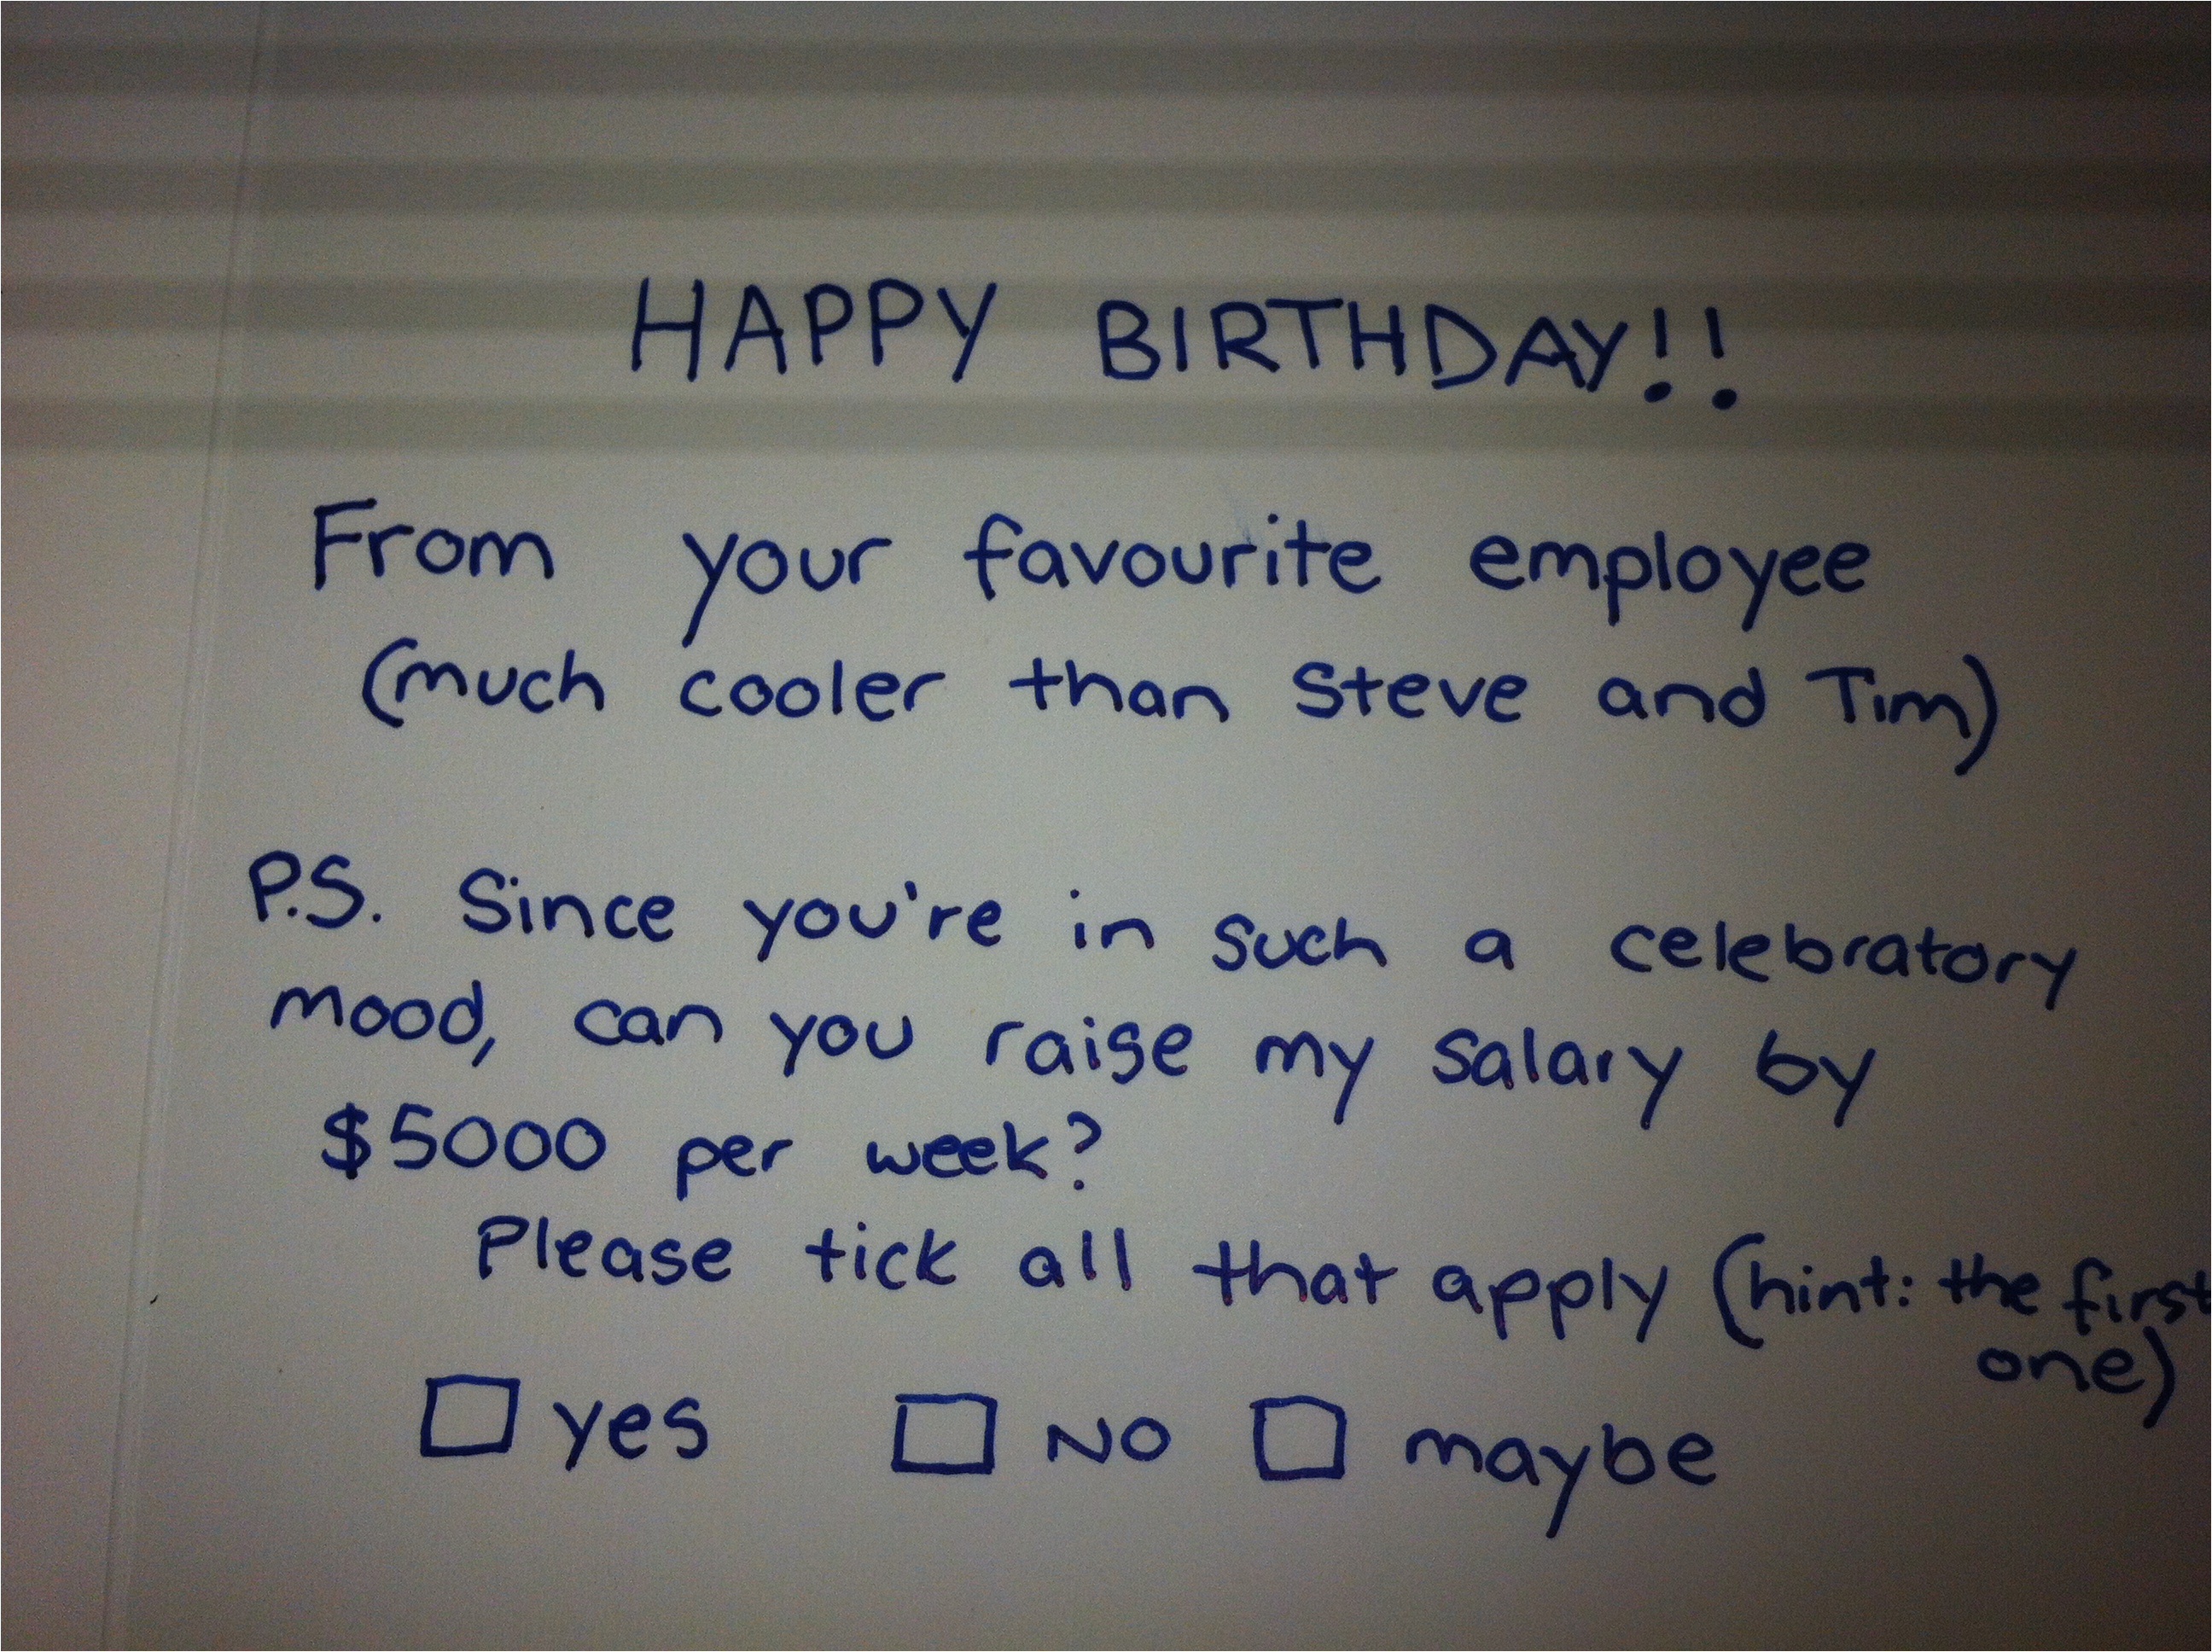 What to Write In A Birthday Card for Your Boss Lesson 75 asking Your Boss for A Payrise Via A Birthday